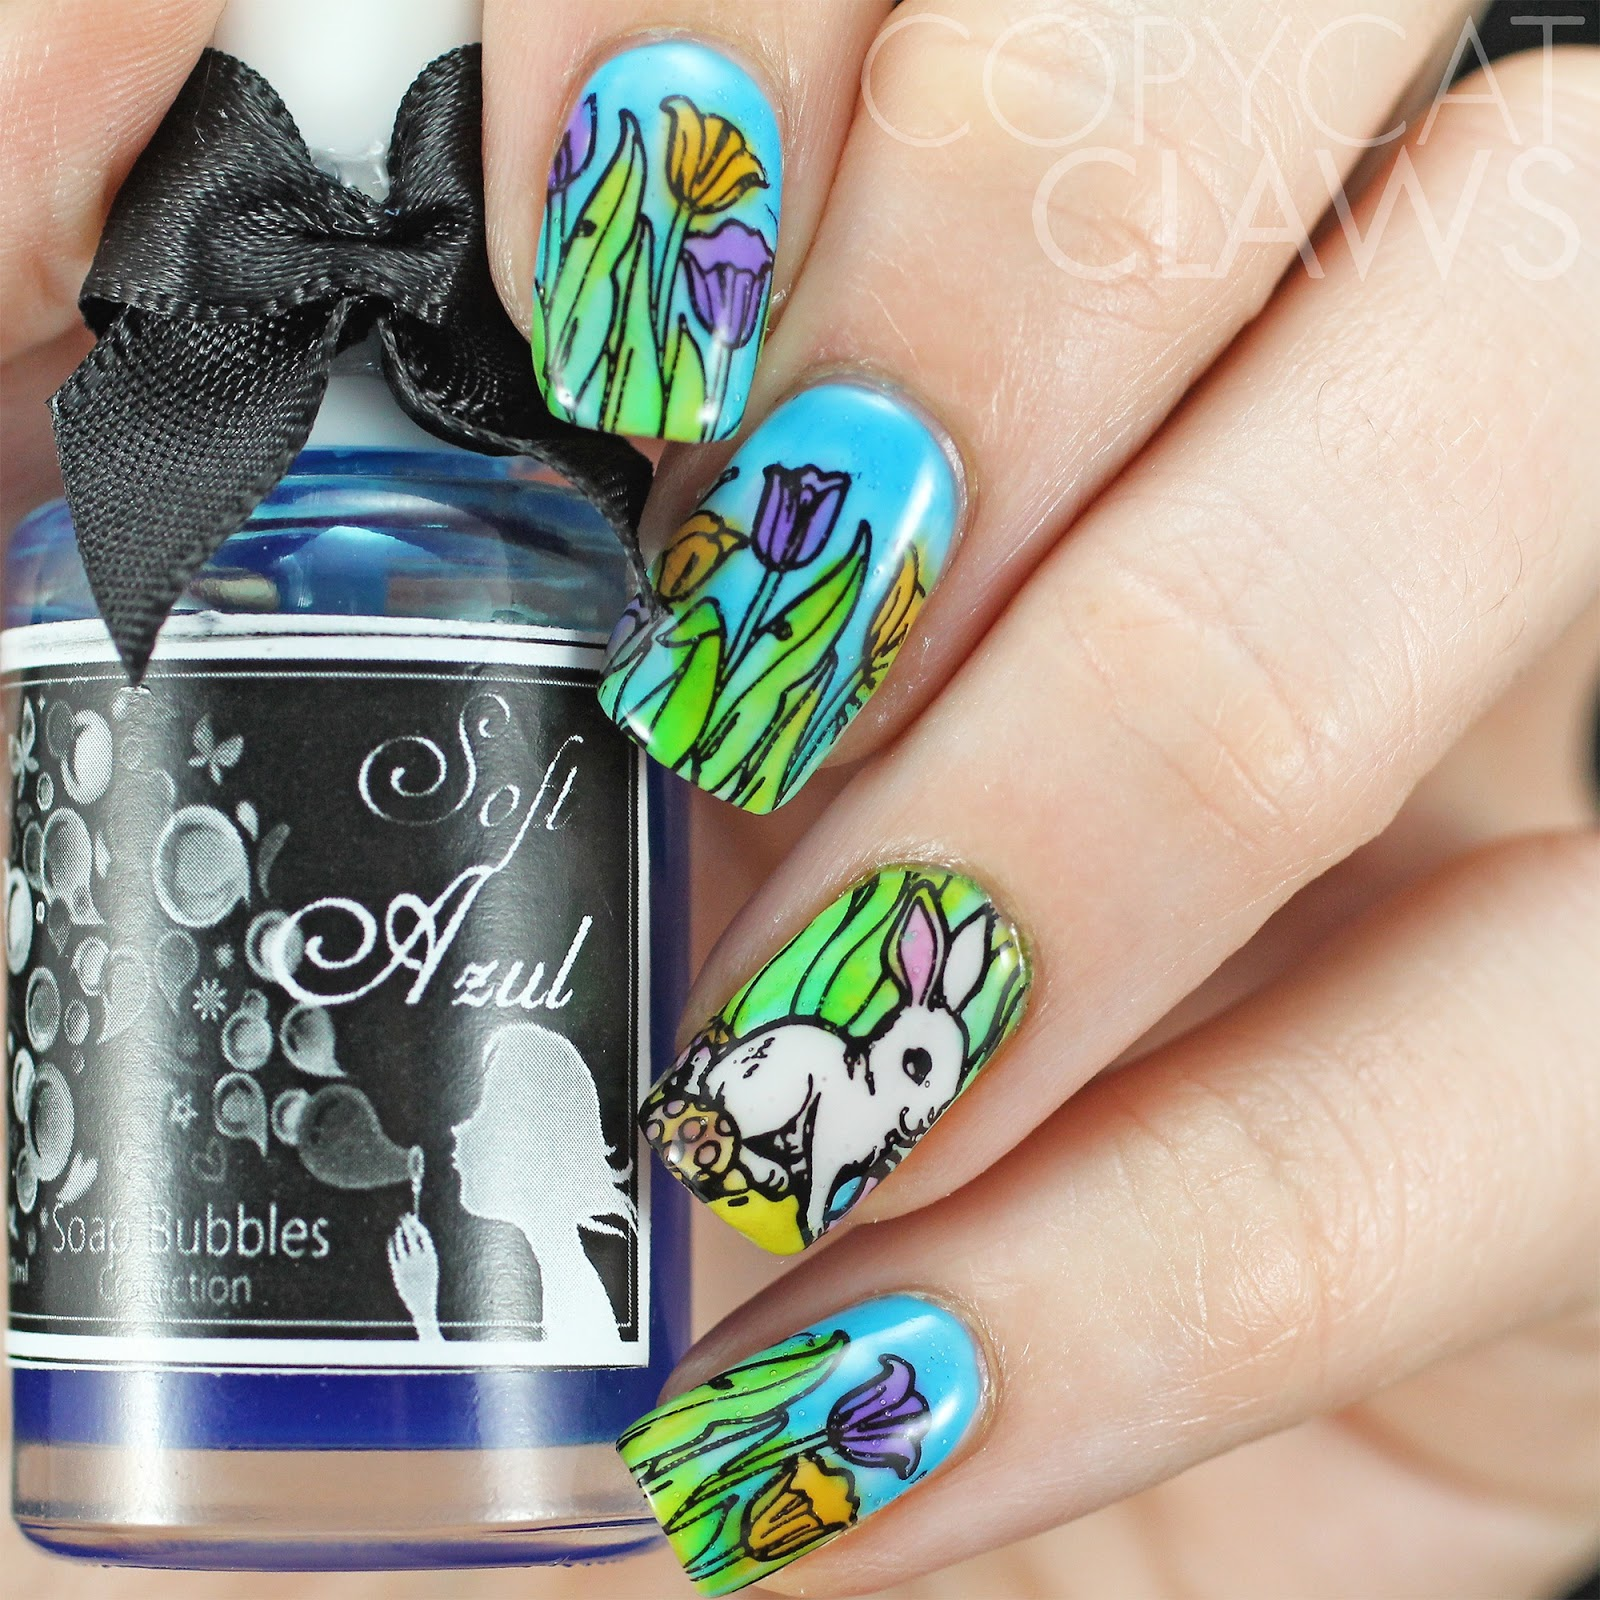 Copycat Claws: HPB and 40 Great Nail Art Ideas Present Spring Nails